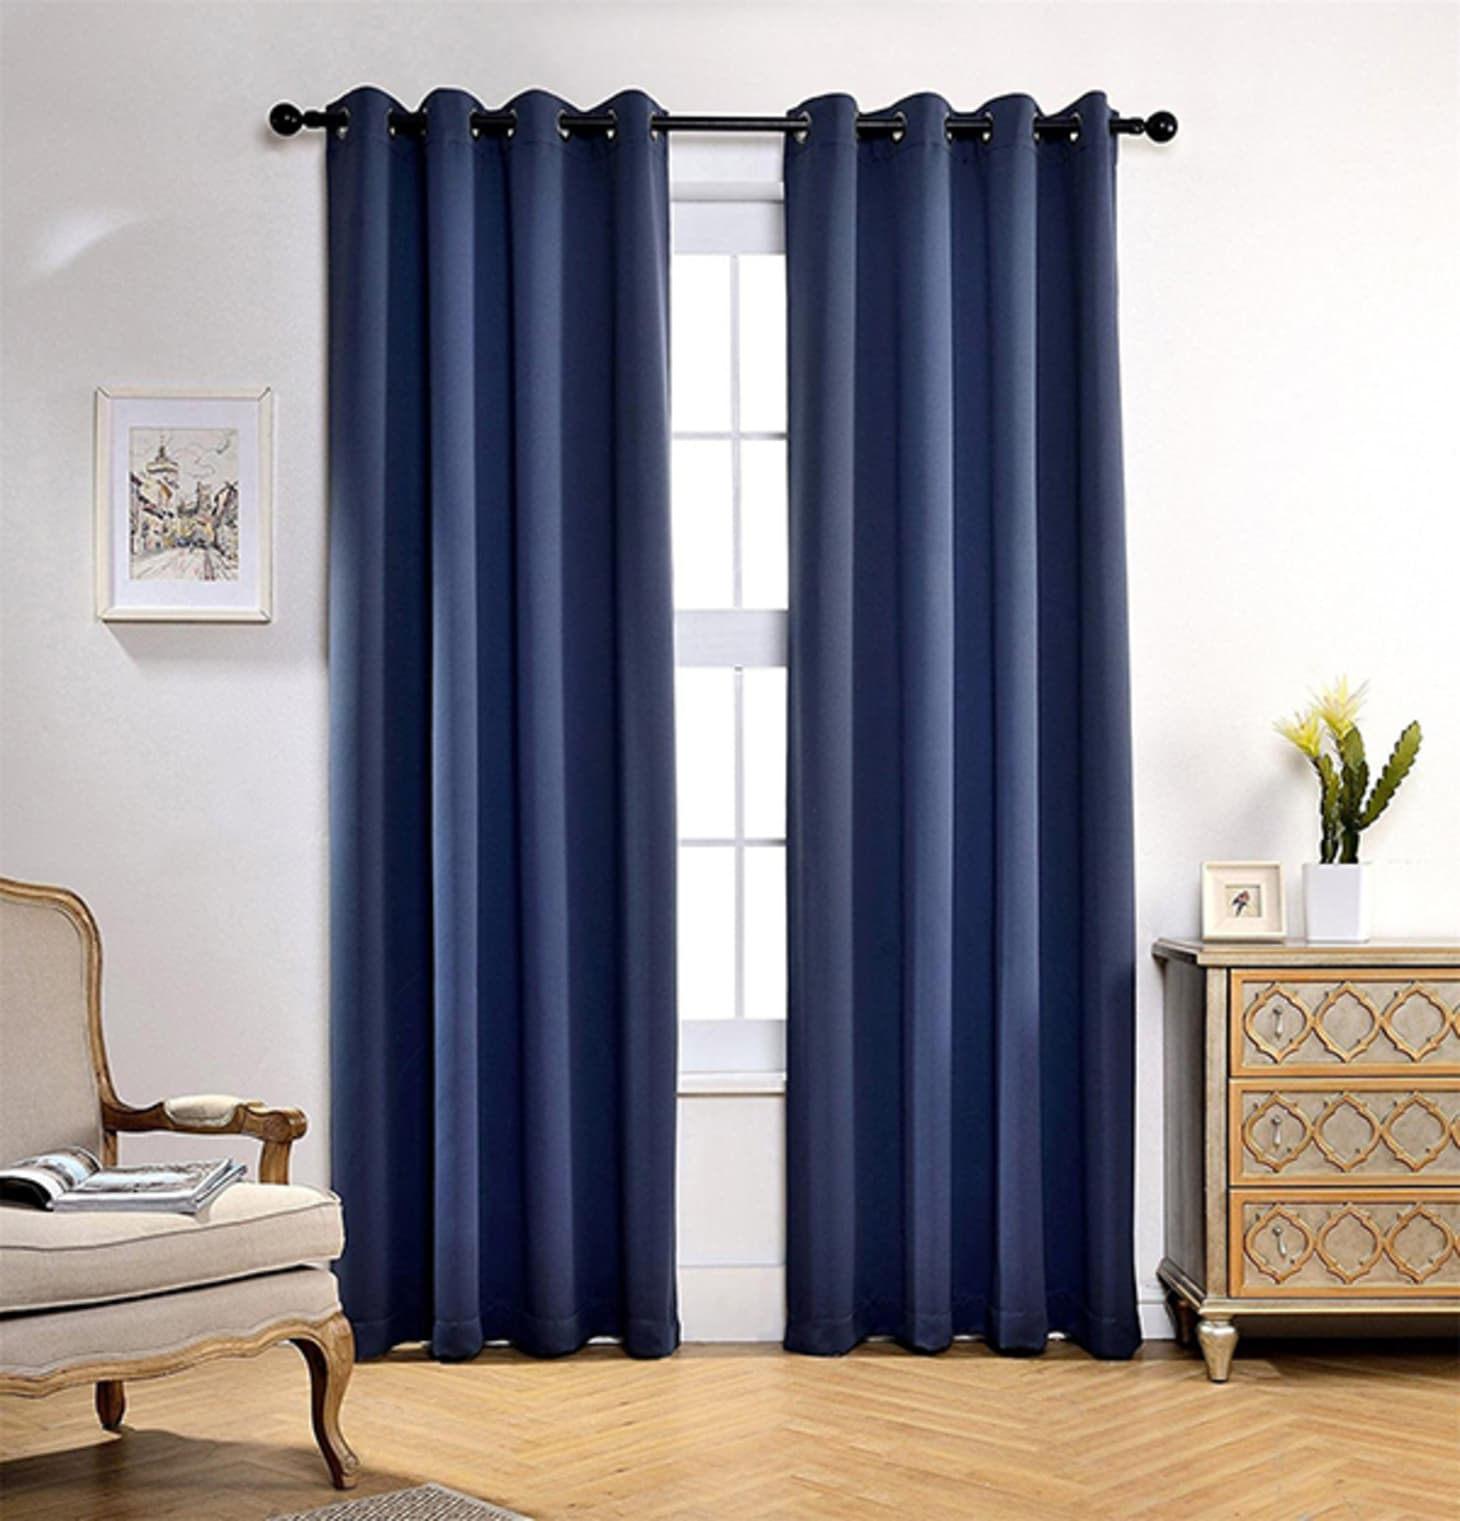 Best Insulated Blackout Curtains | Apartment Therapy Inside Thermal Insulated Blackout Curtain Panel Pairs (View 20 of 30)